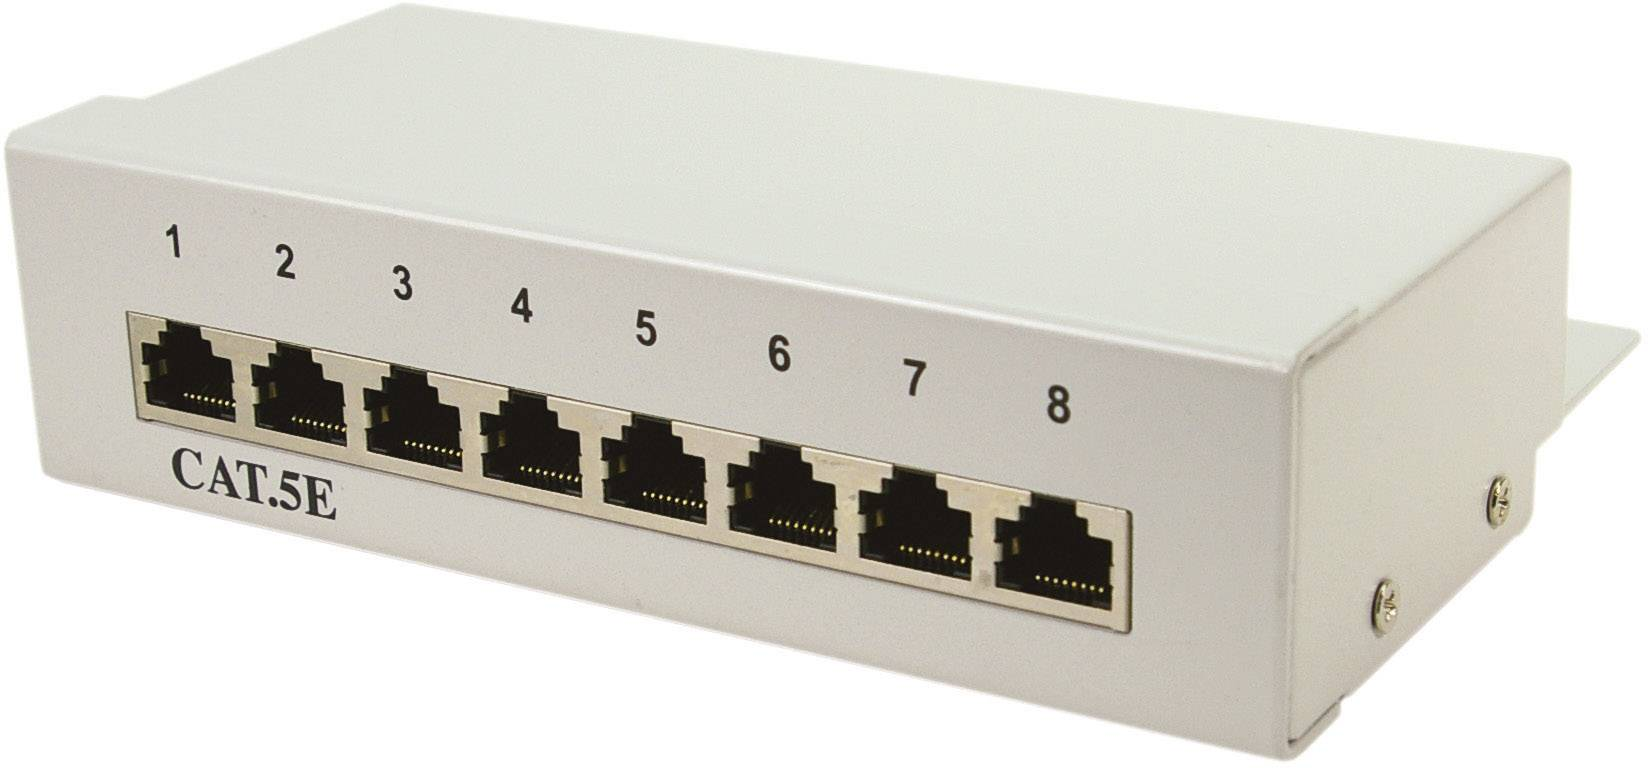 medium resolution of logilink np0038 8 ports network patch box cat 5e